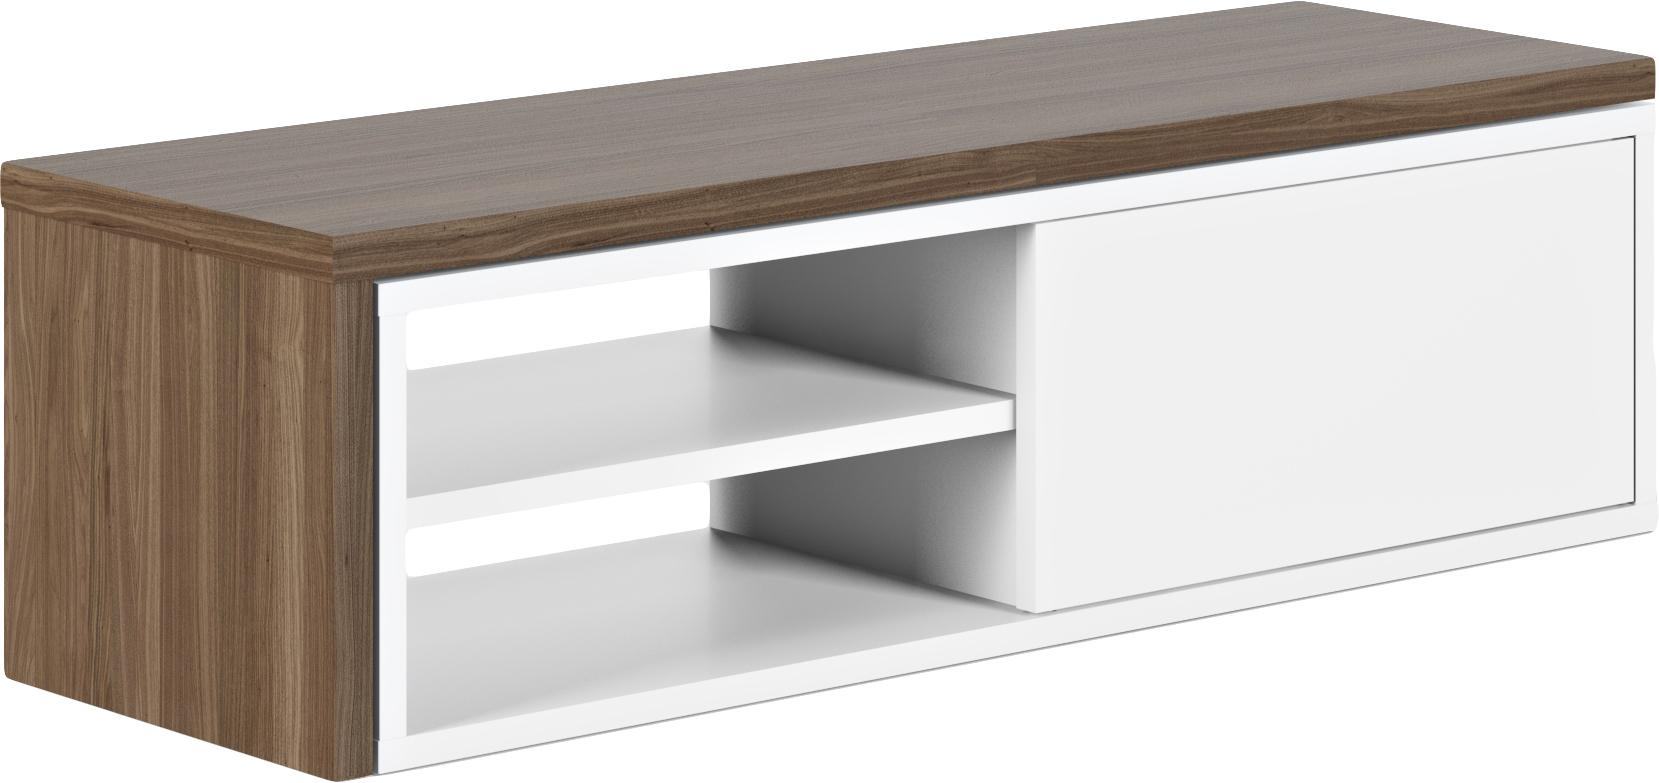 Mueble TV extensible Lieke, Nogal, blanco, An 110 - 203 x Al 32 cm